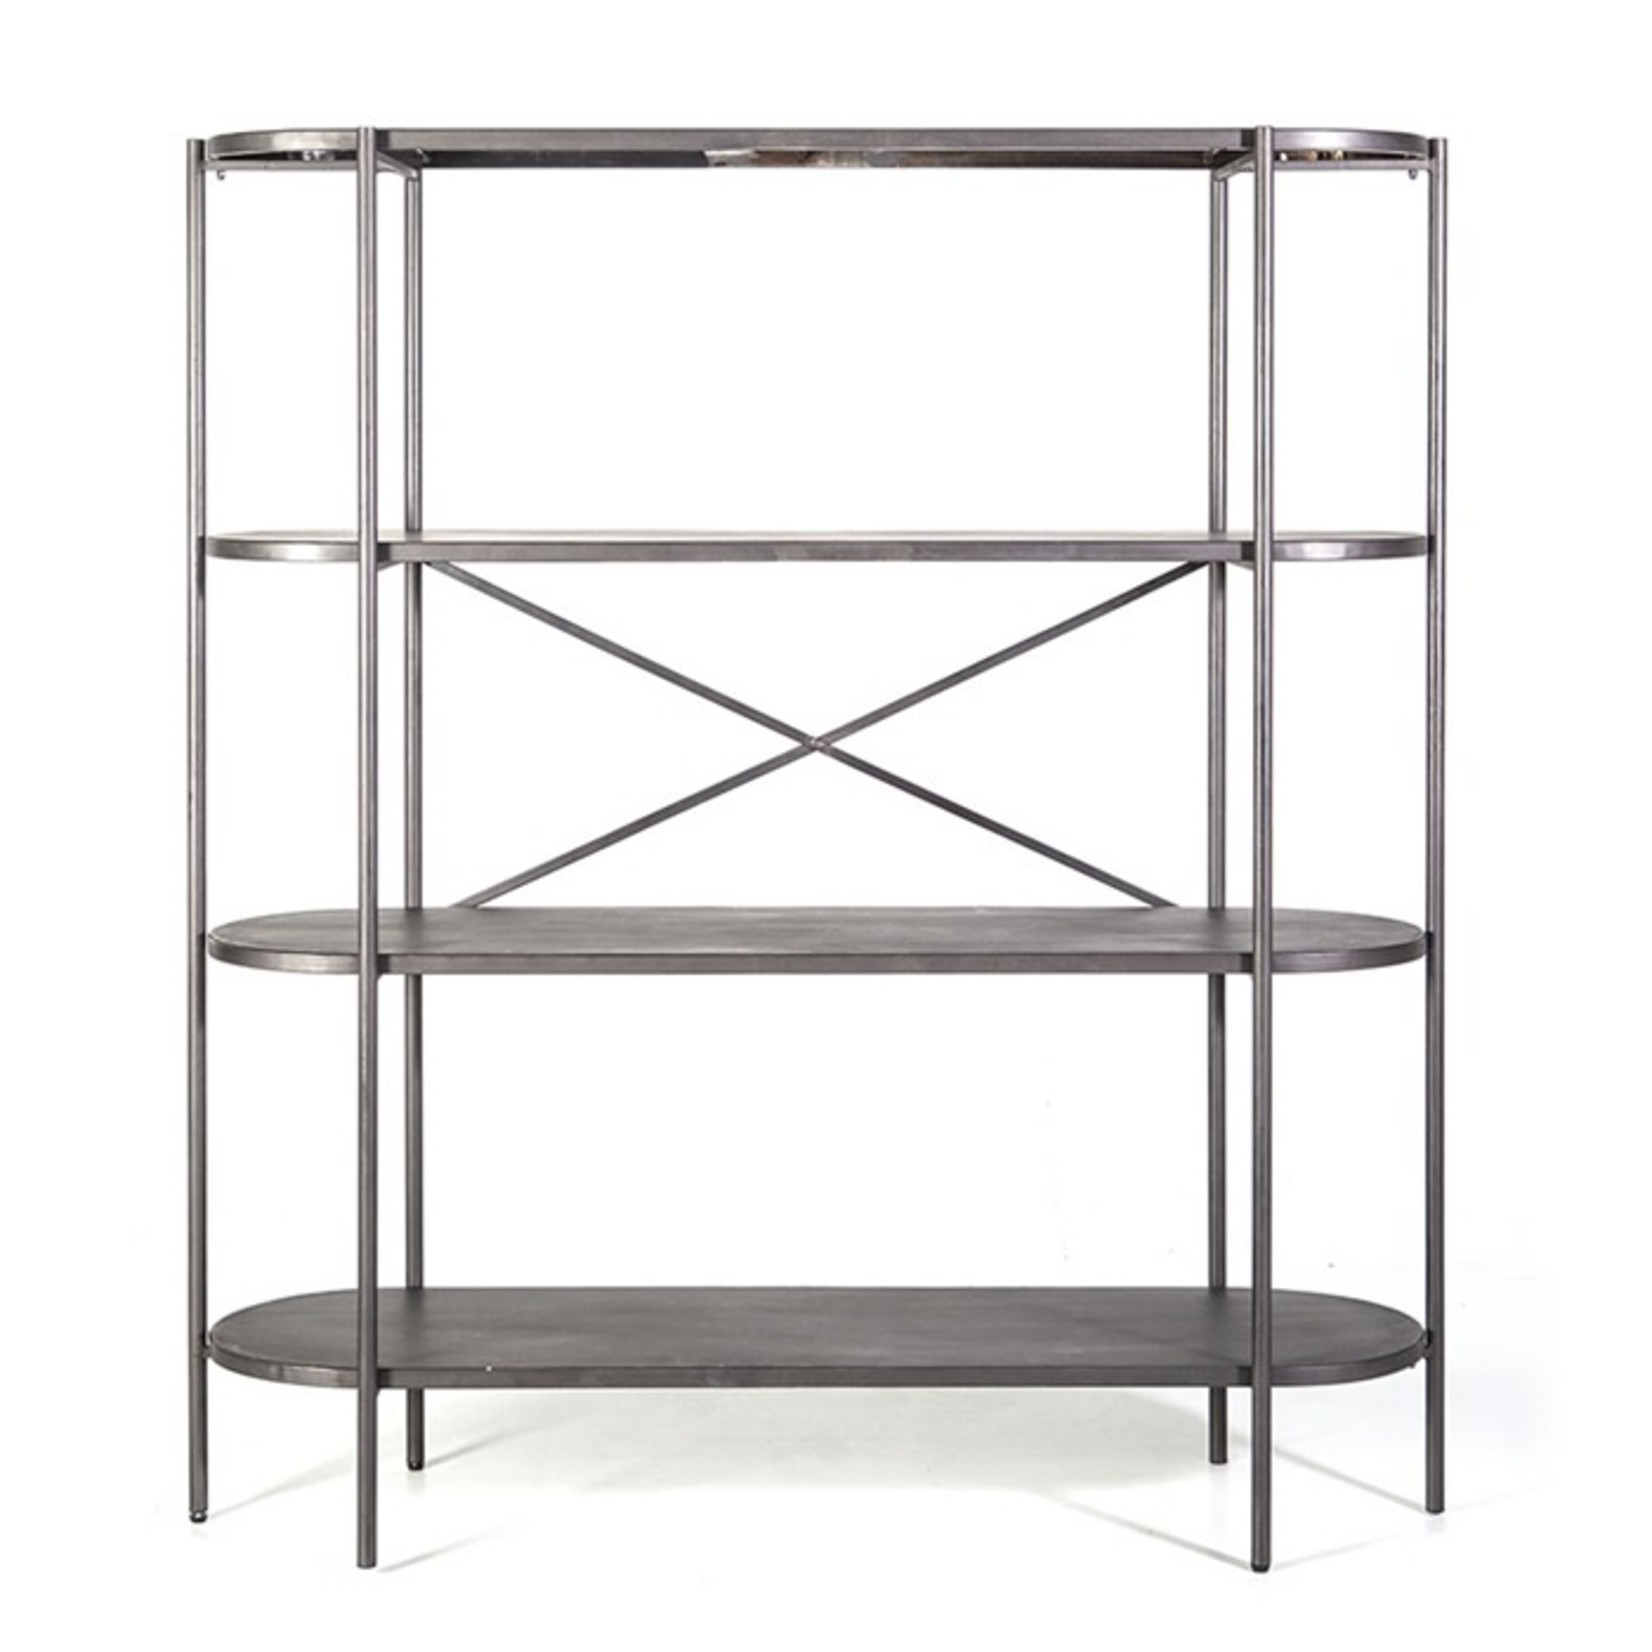 By Boo Burly Collection - bookcase